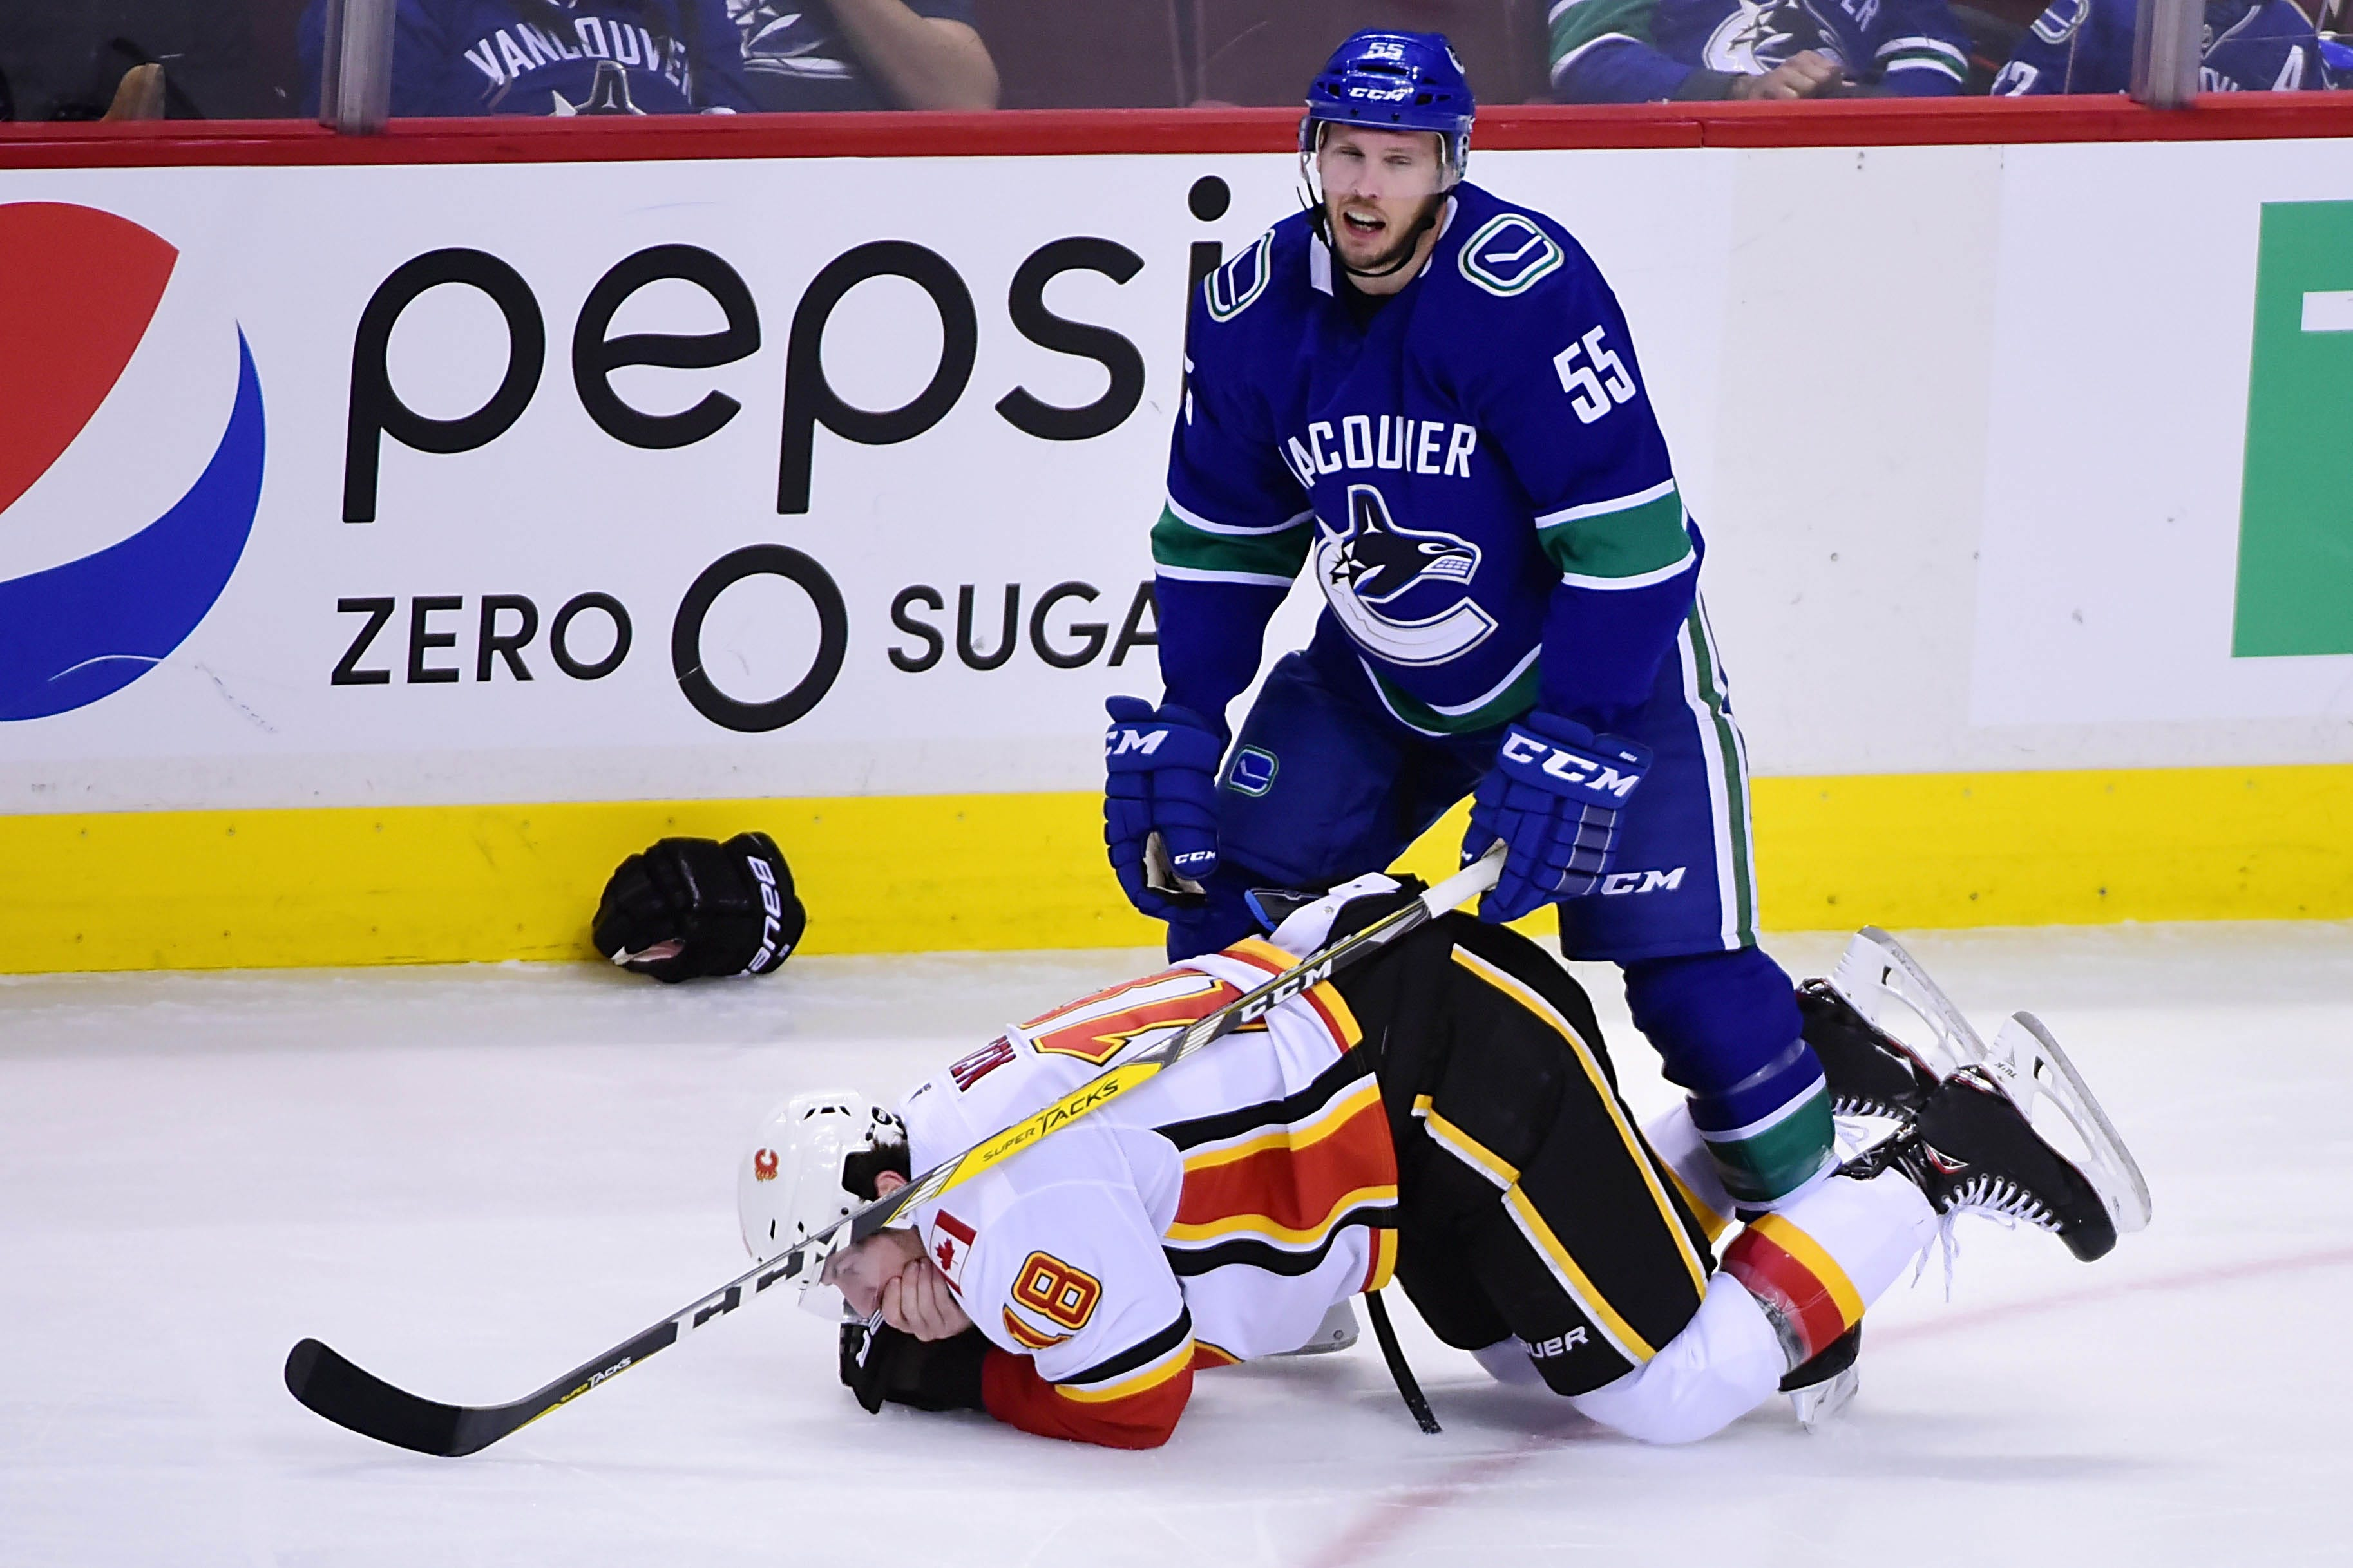 Calgary Flames forward James Neal grabs his mouth after he is high-sticked by Vancouver Canucks defenseman Alex Biega.